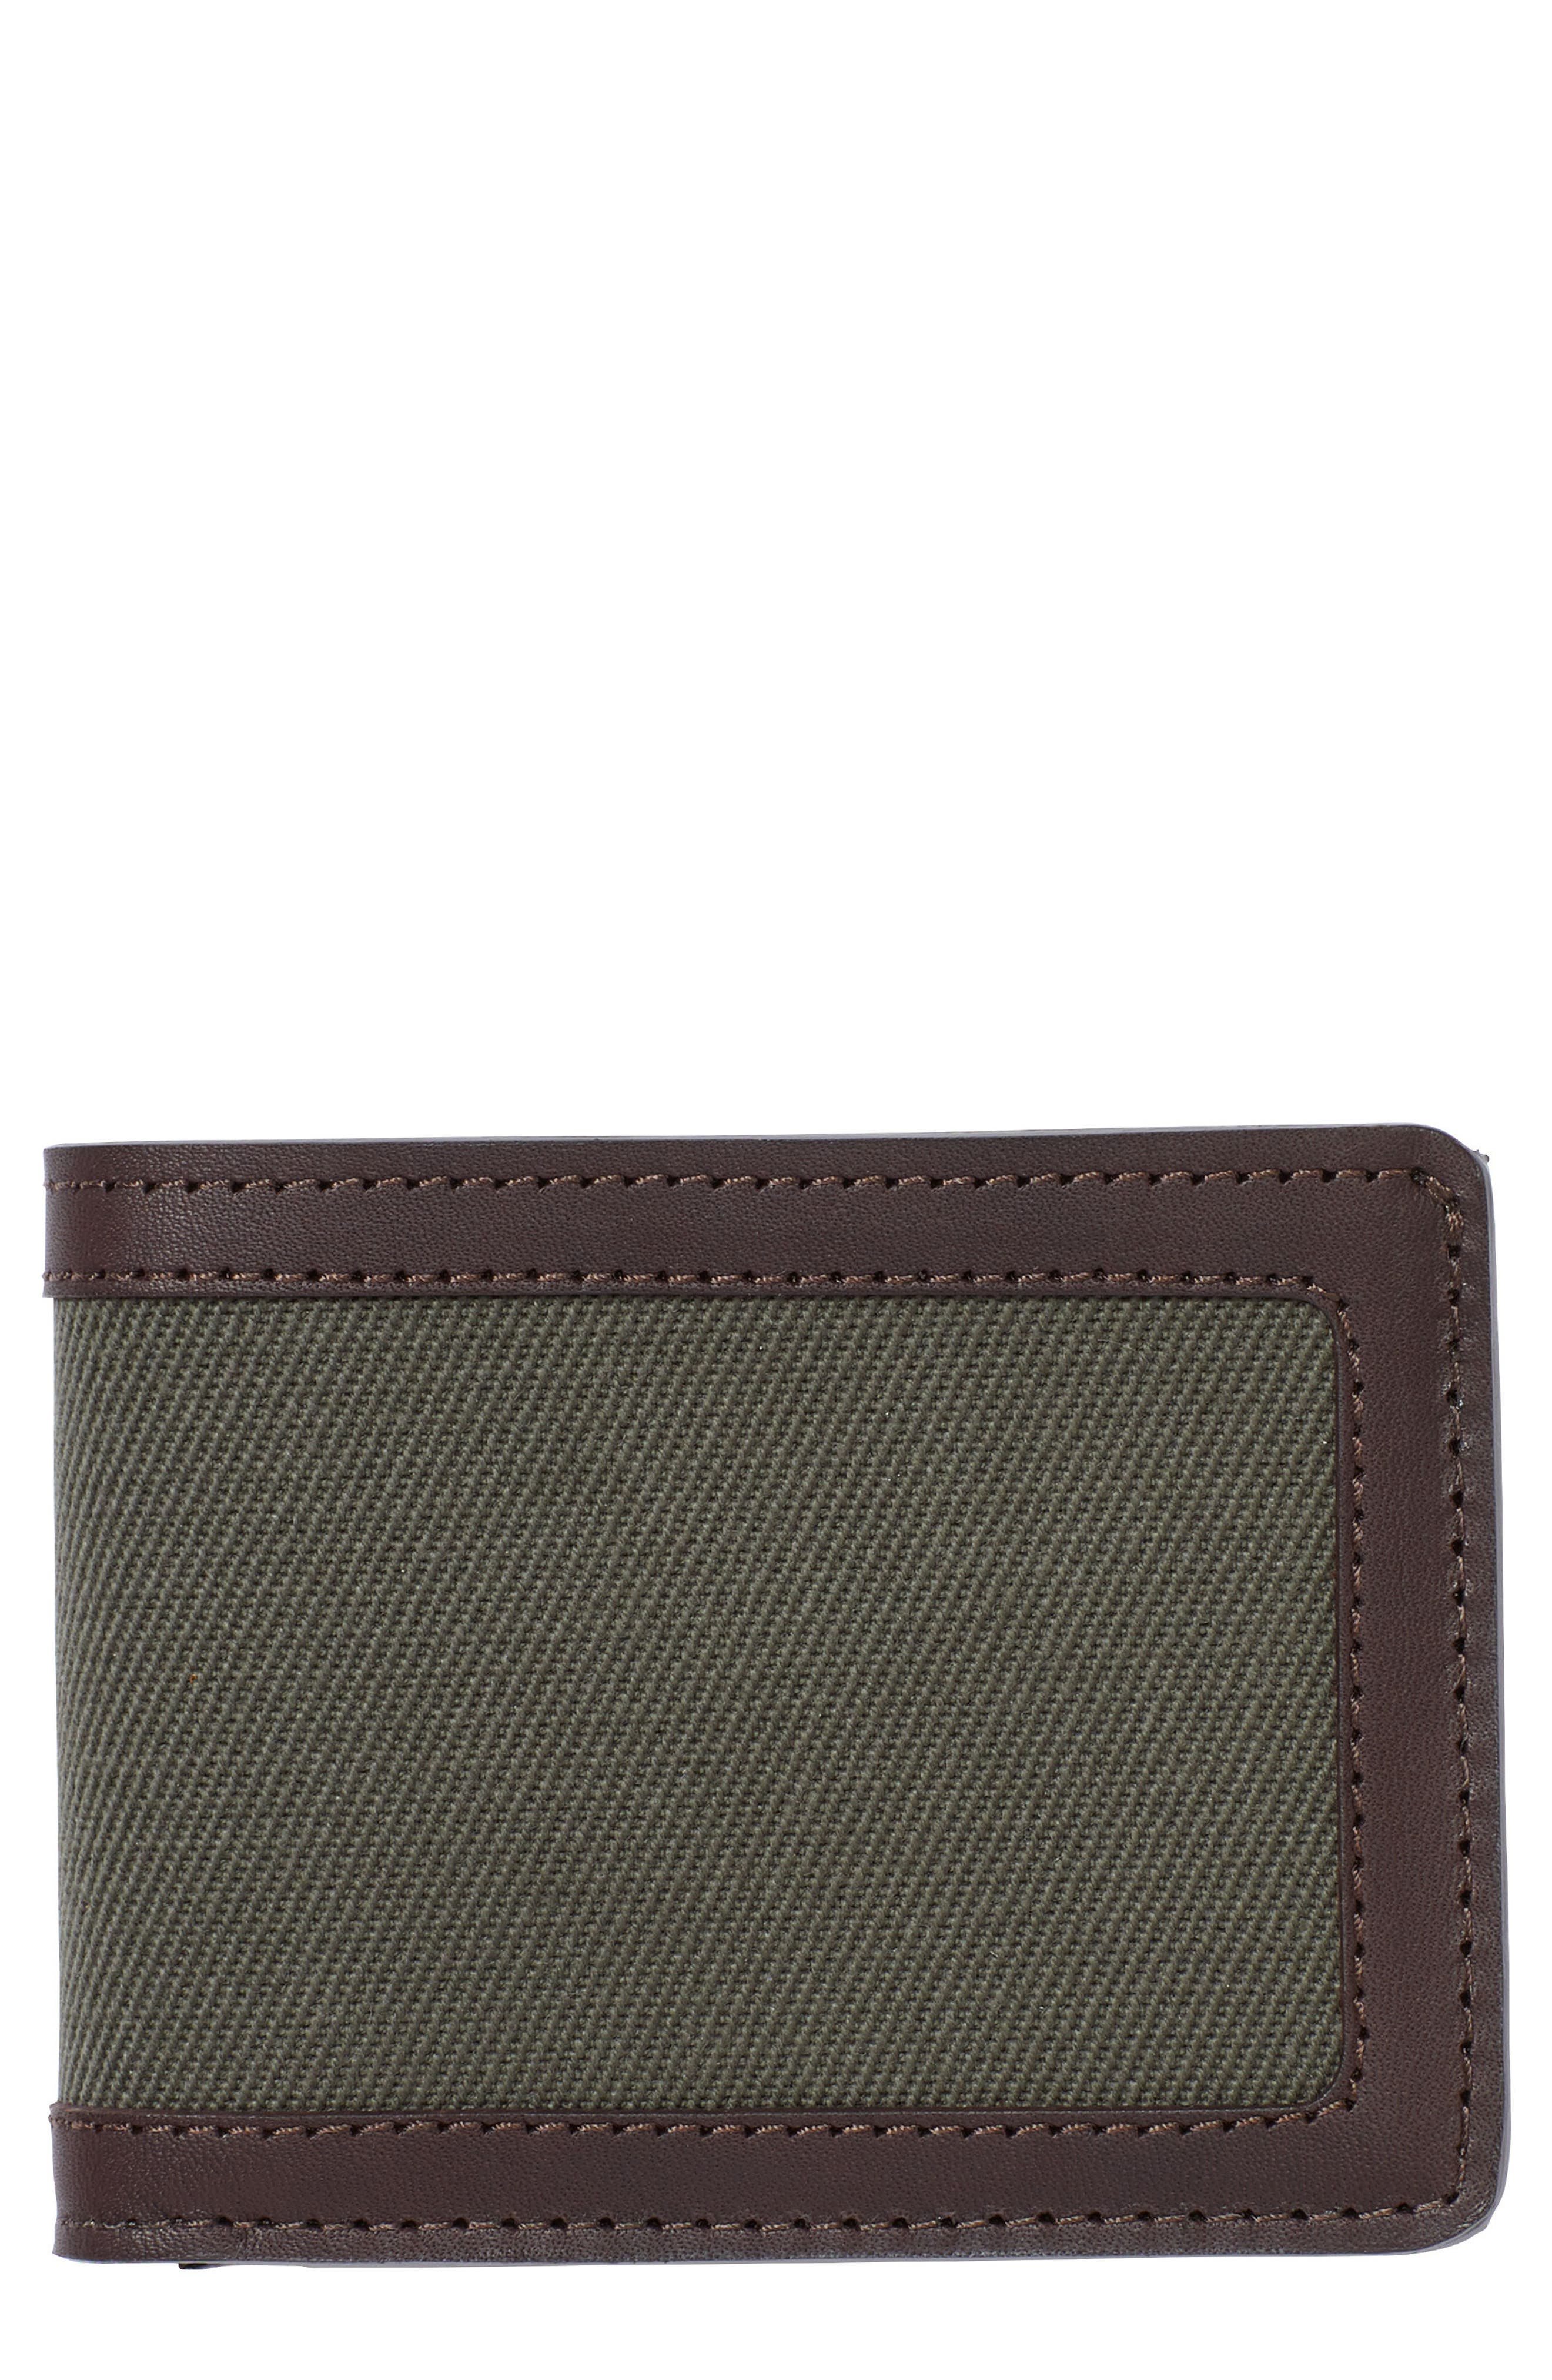 Alternate Image 1 Selected - Filsone Outfitter Leather & Canvas Bifold Wallet